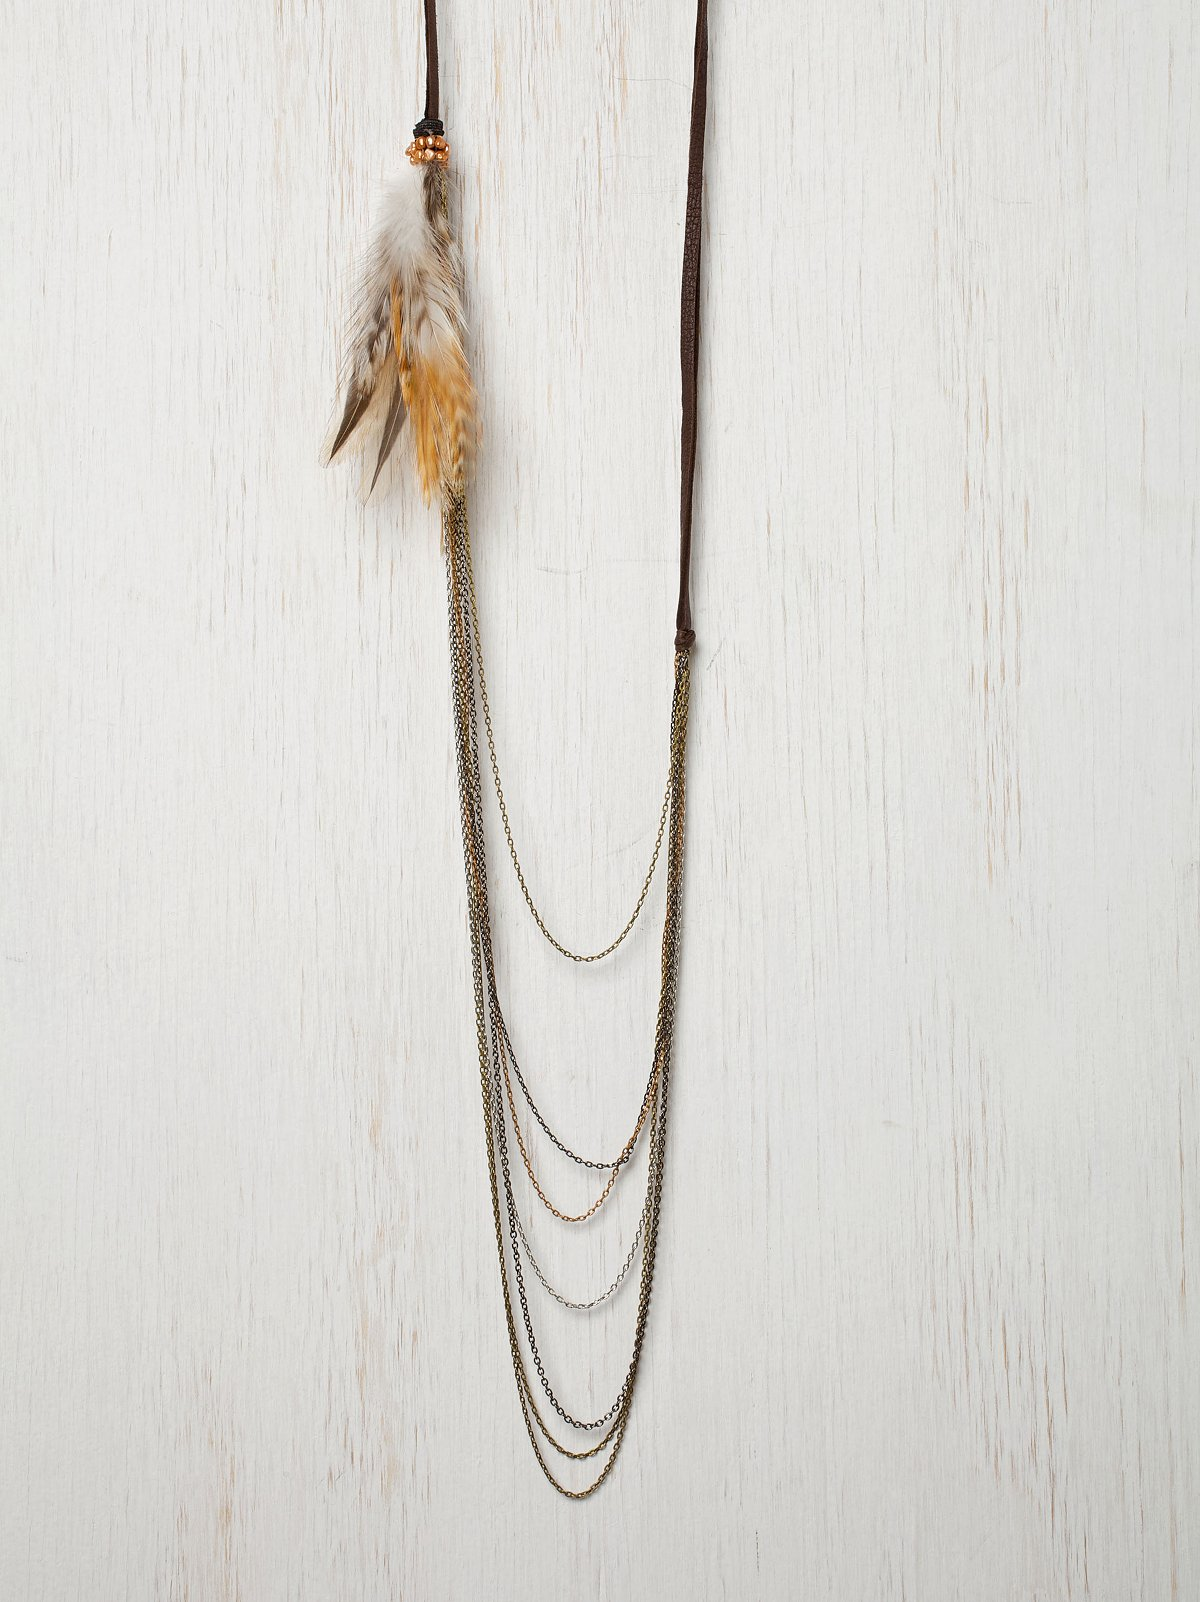 Suede & Feather Chain Necklace